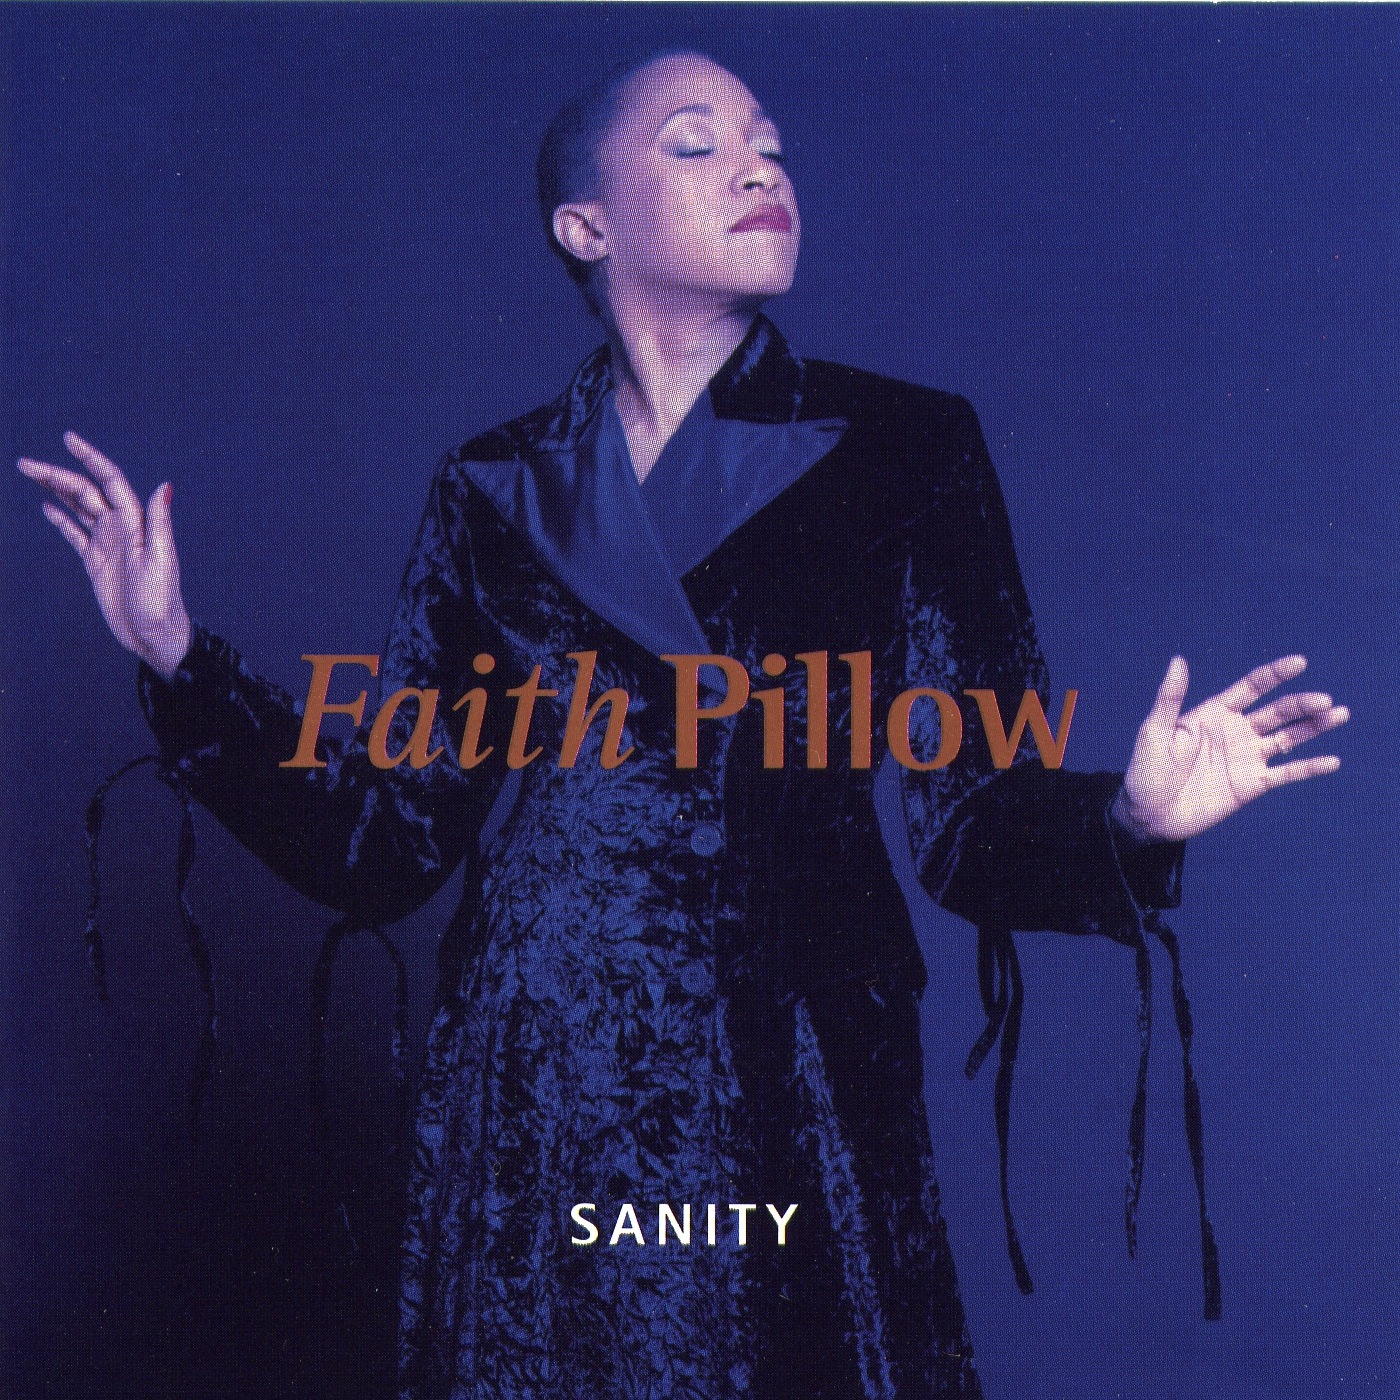 Faith Pillow - Sanity